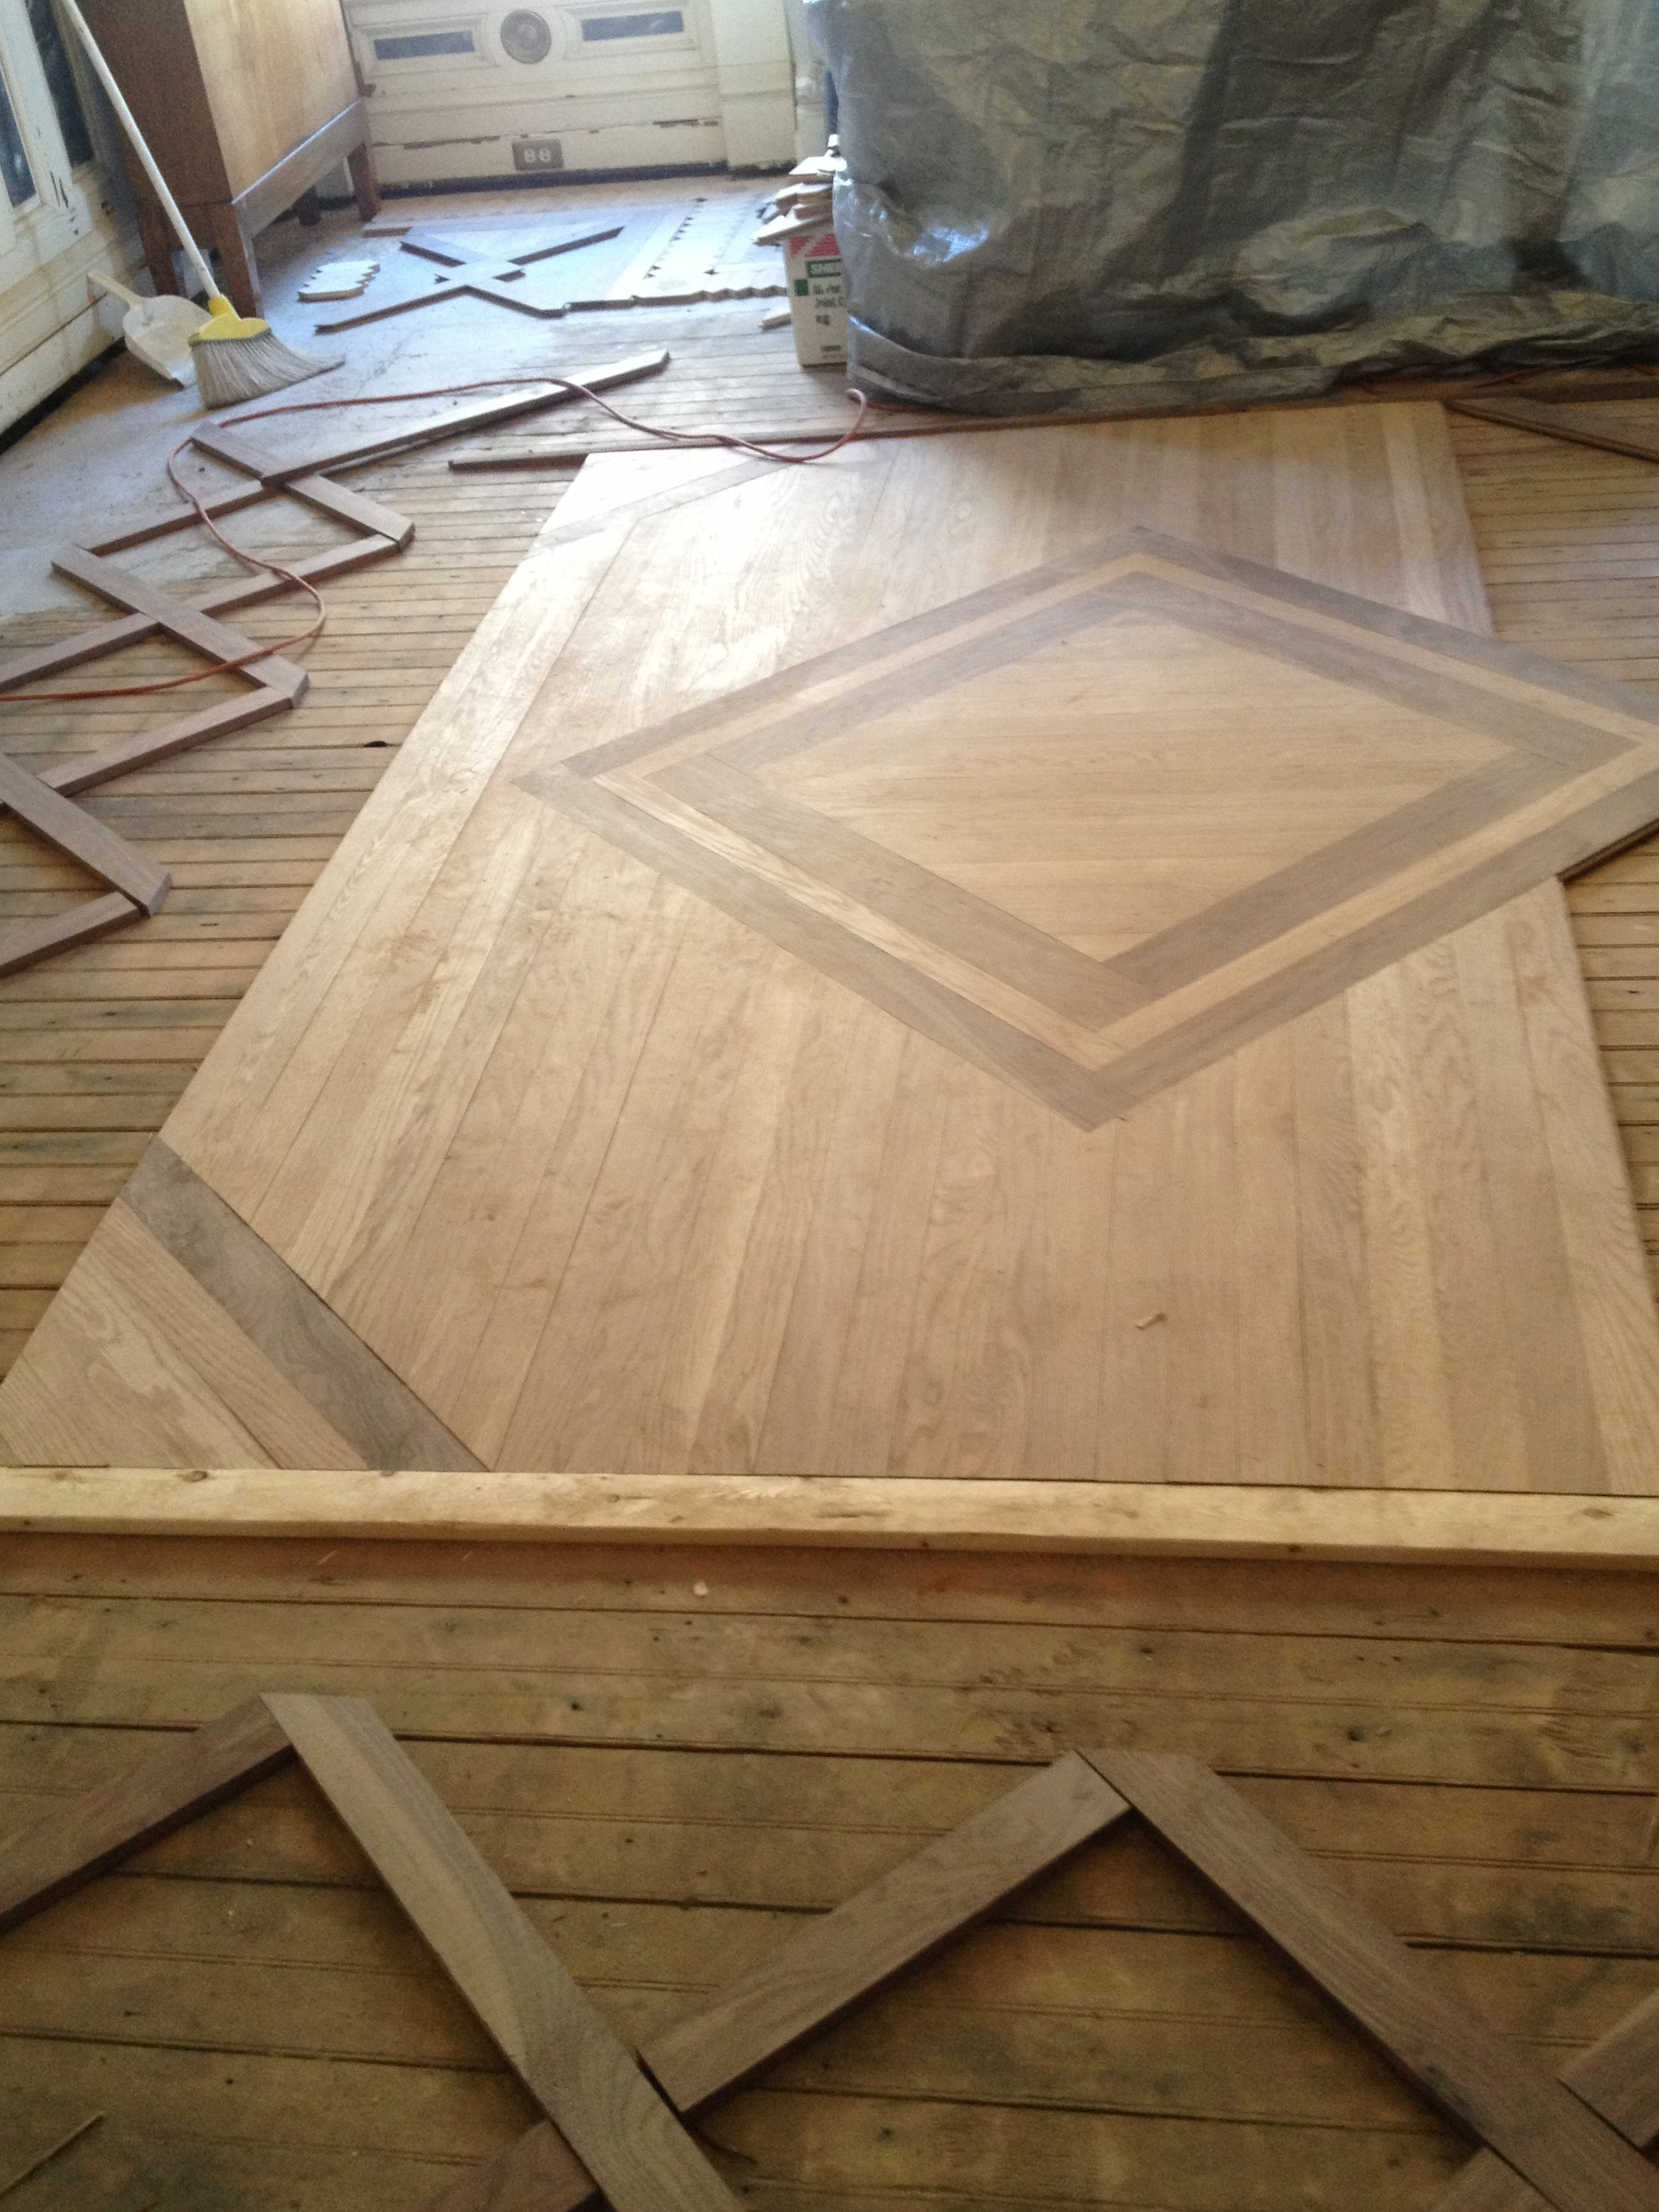 hardwood floor installation knoxville of explore the shakespeare chateau inn and gardens intended for here shown at left the faithful reproduction of the parquet floor in the dining room the original floor suffered irreparable water damage during and